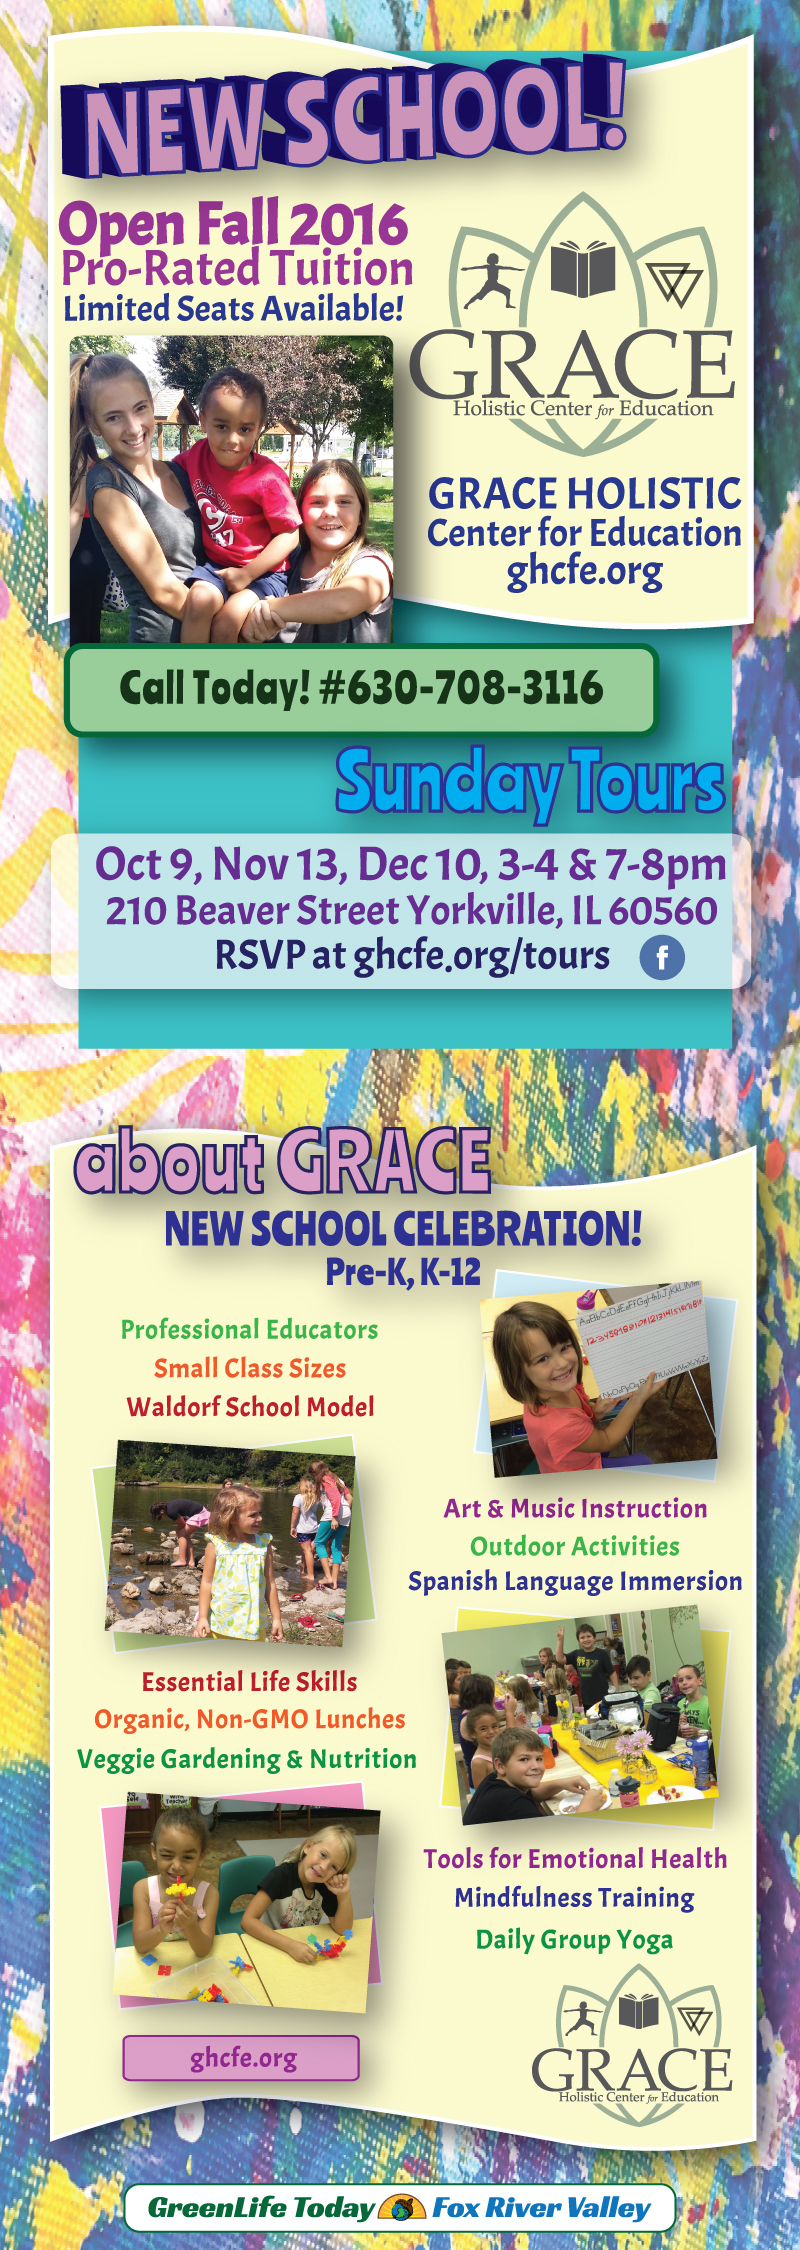 yorkville illinois private school, fox river valley, grace holistic center for education